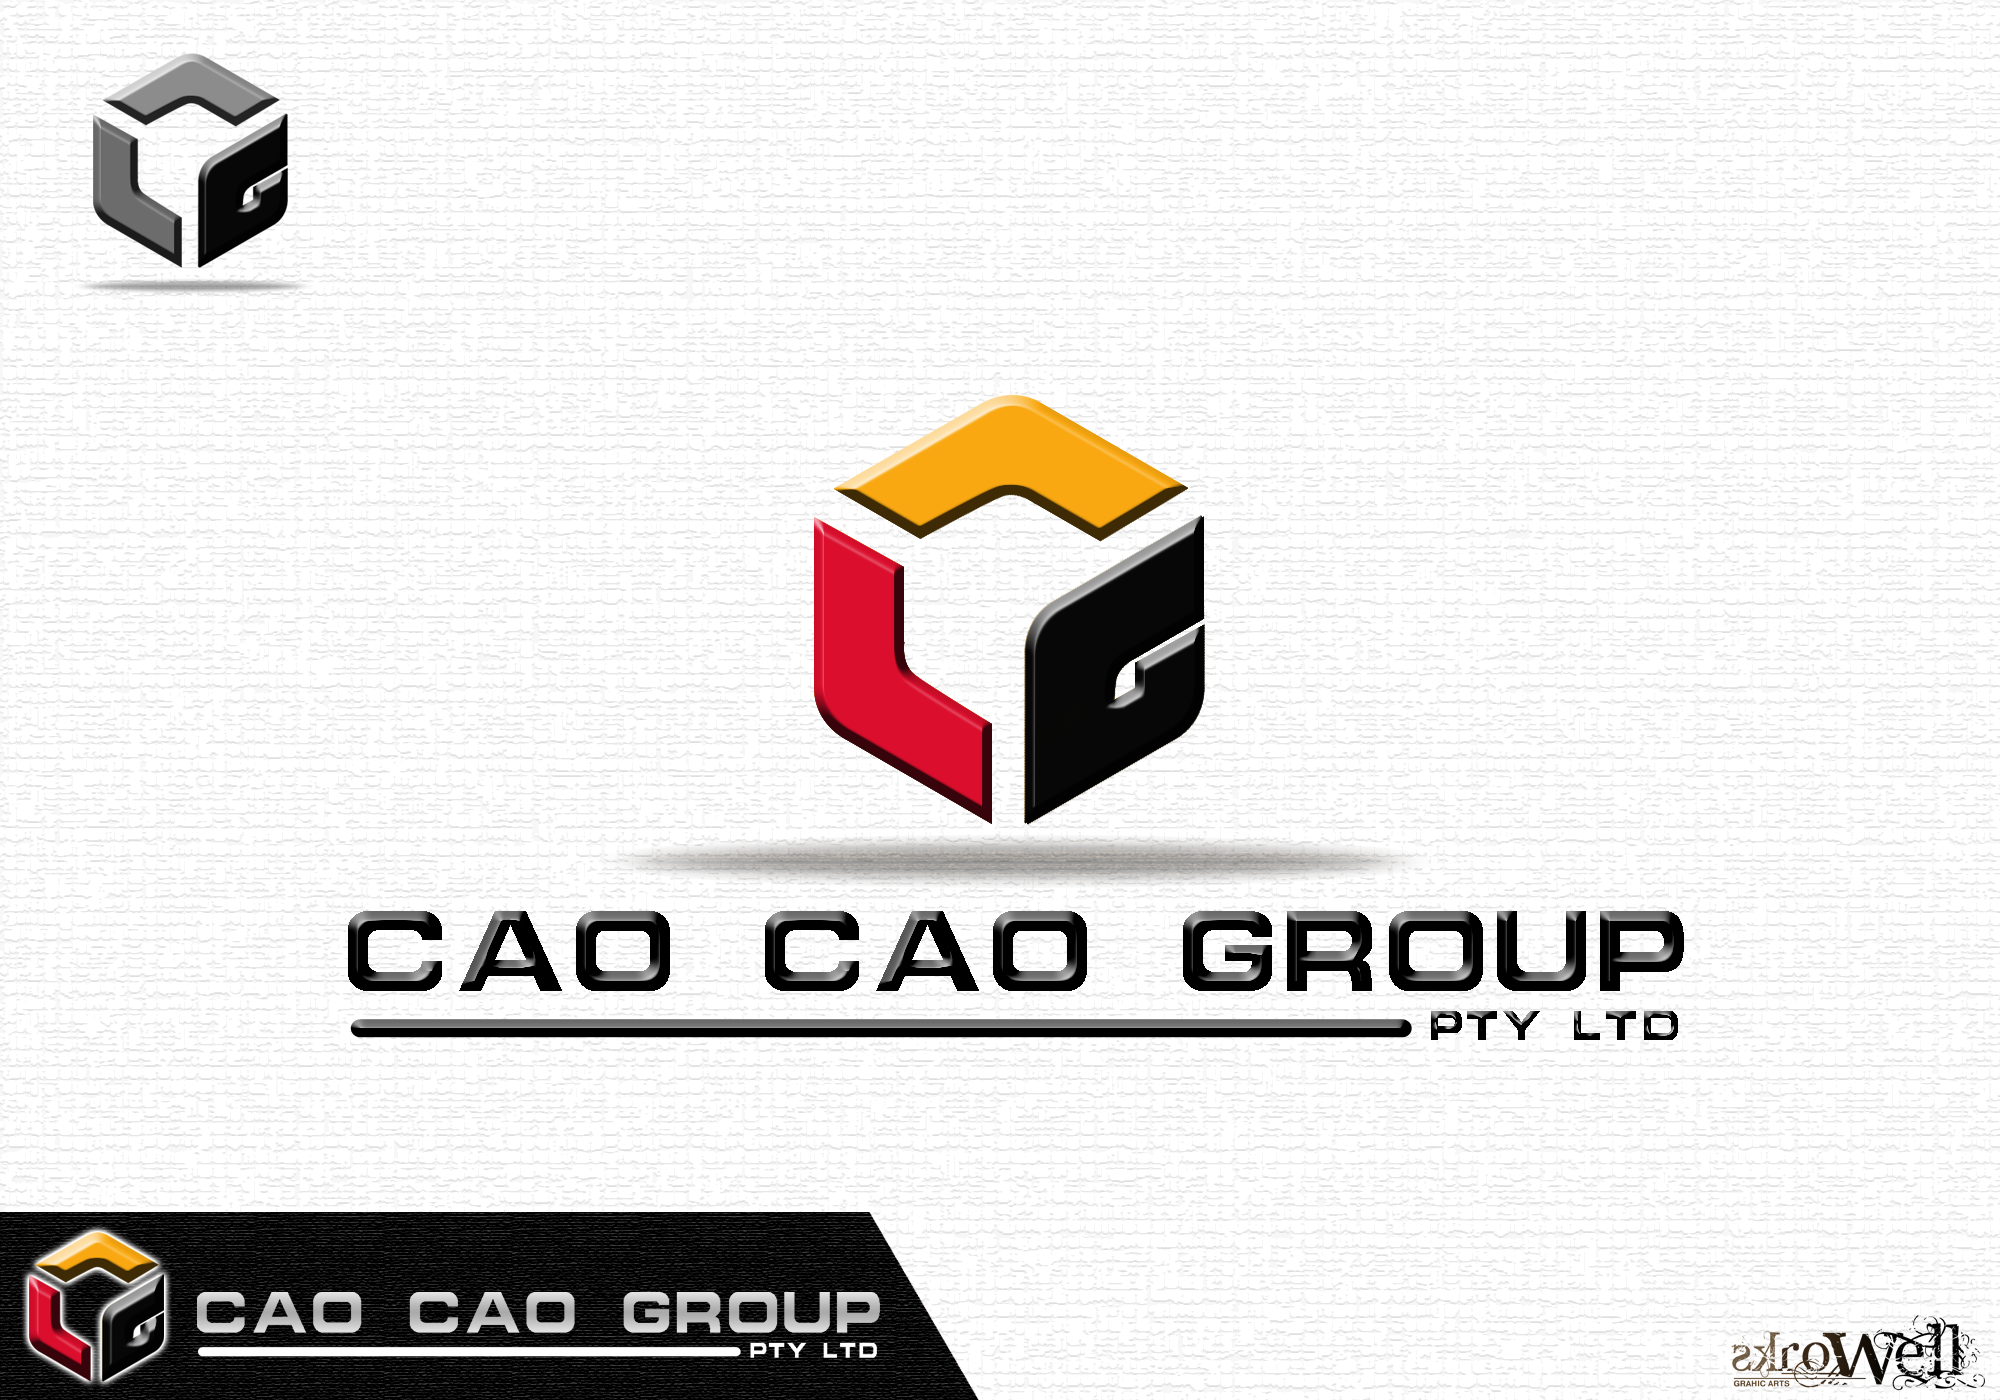 Logo Design by Rowell - Entry No. 113 in the Logo Design Contest cao cao group pty ltd Logo Design.